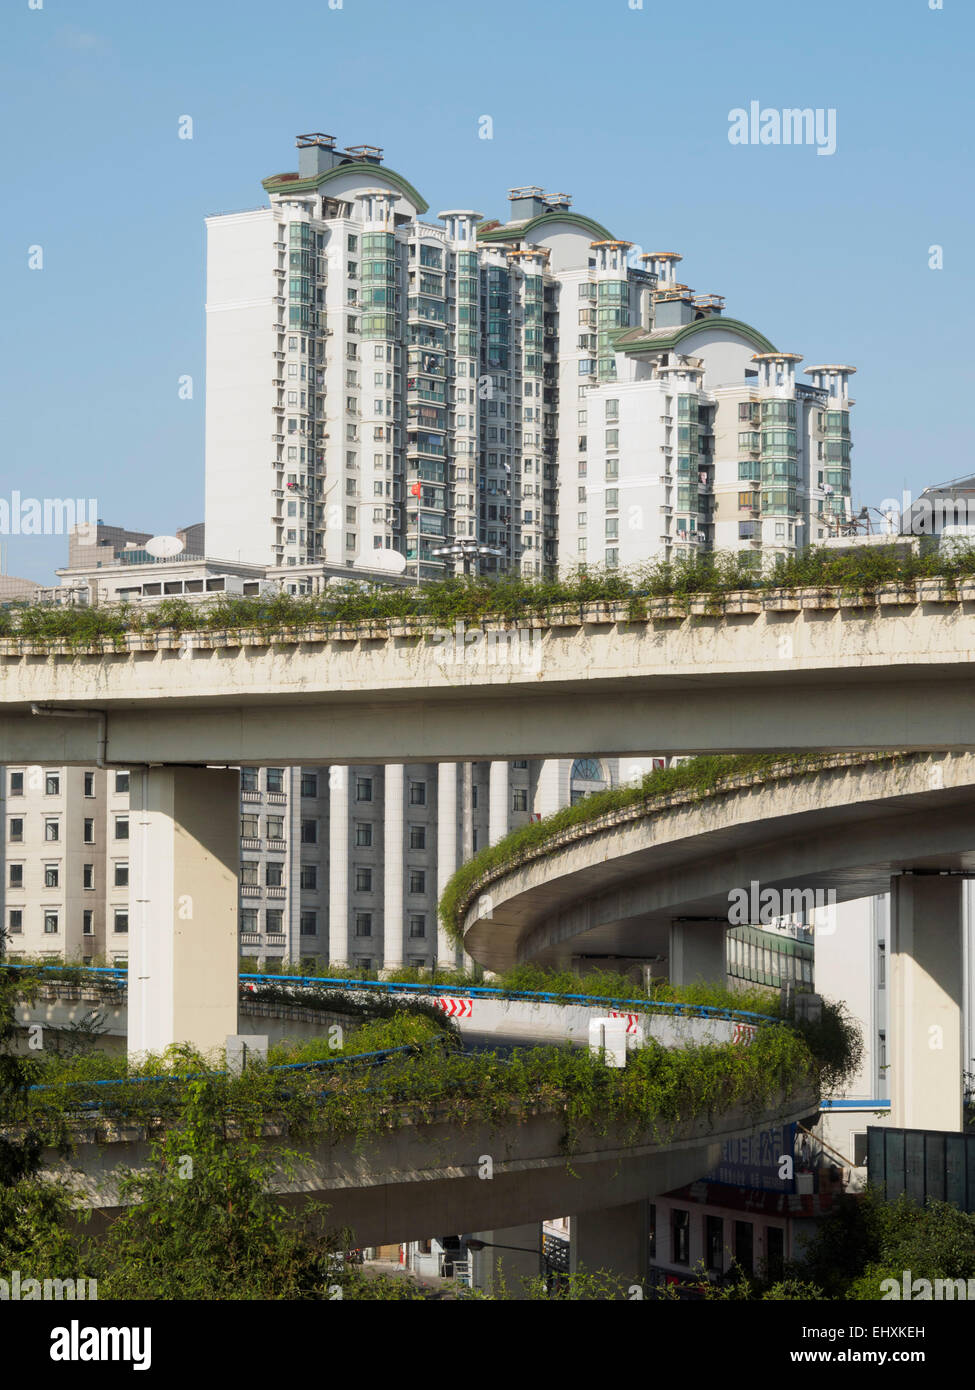 Roads, overpasses and skyscrapers in Shanghai, China - Stock Image